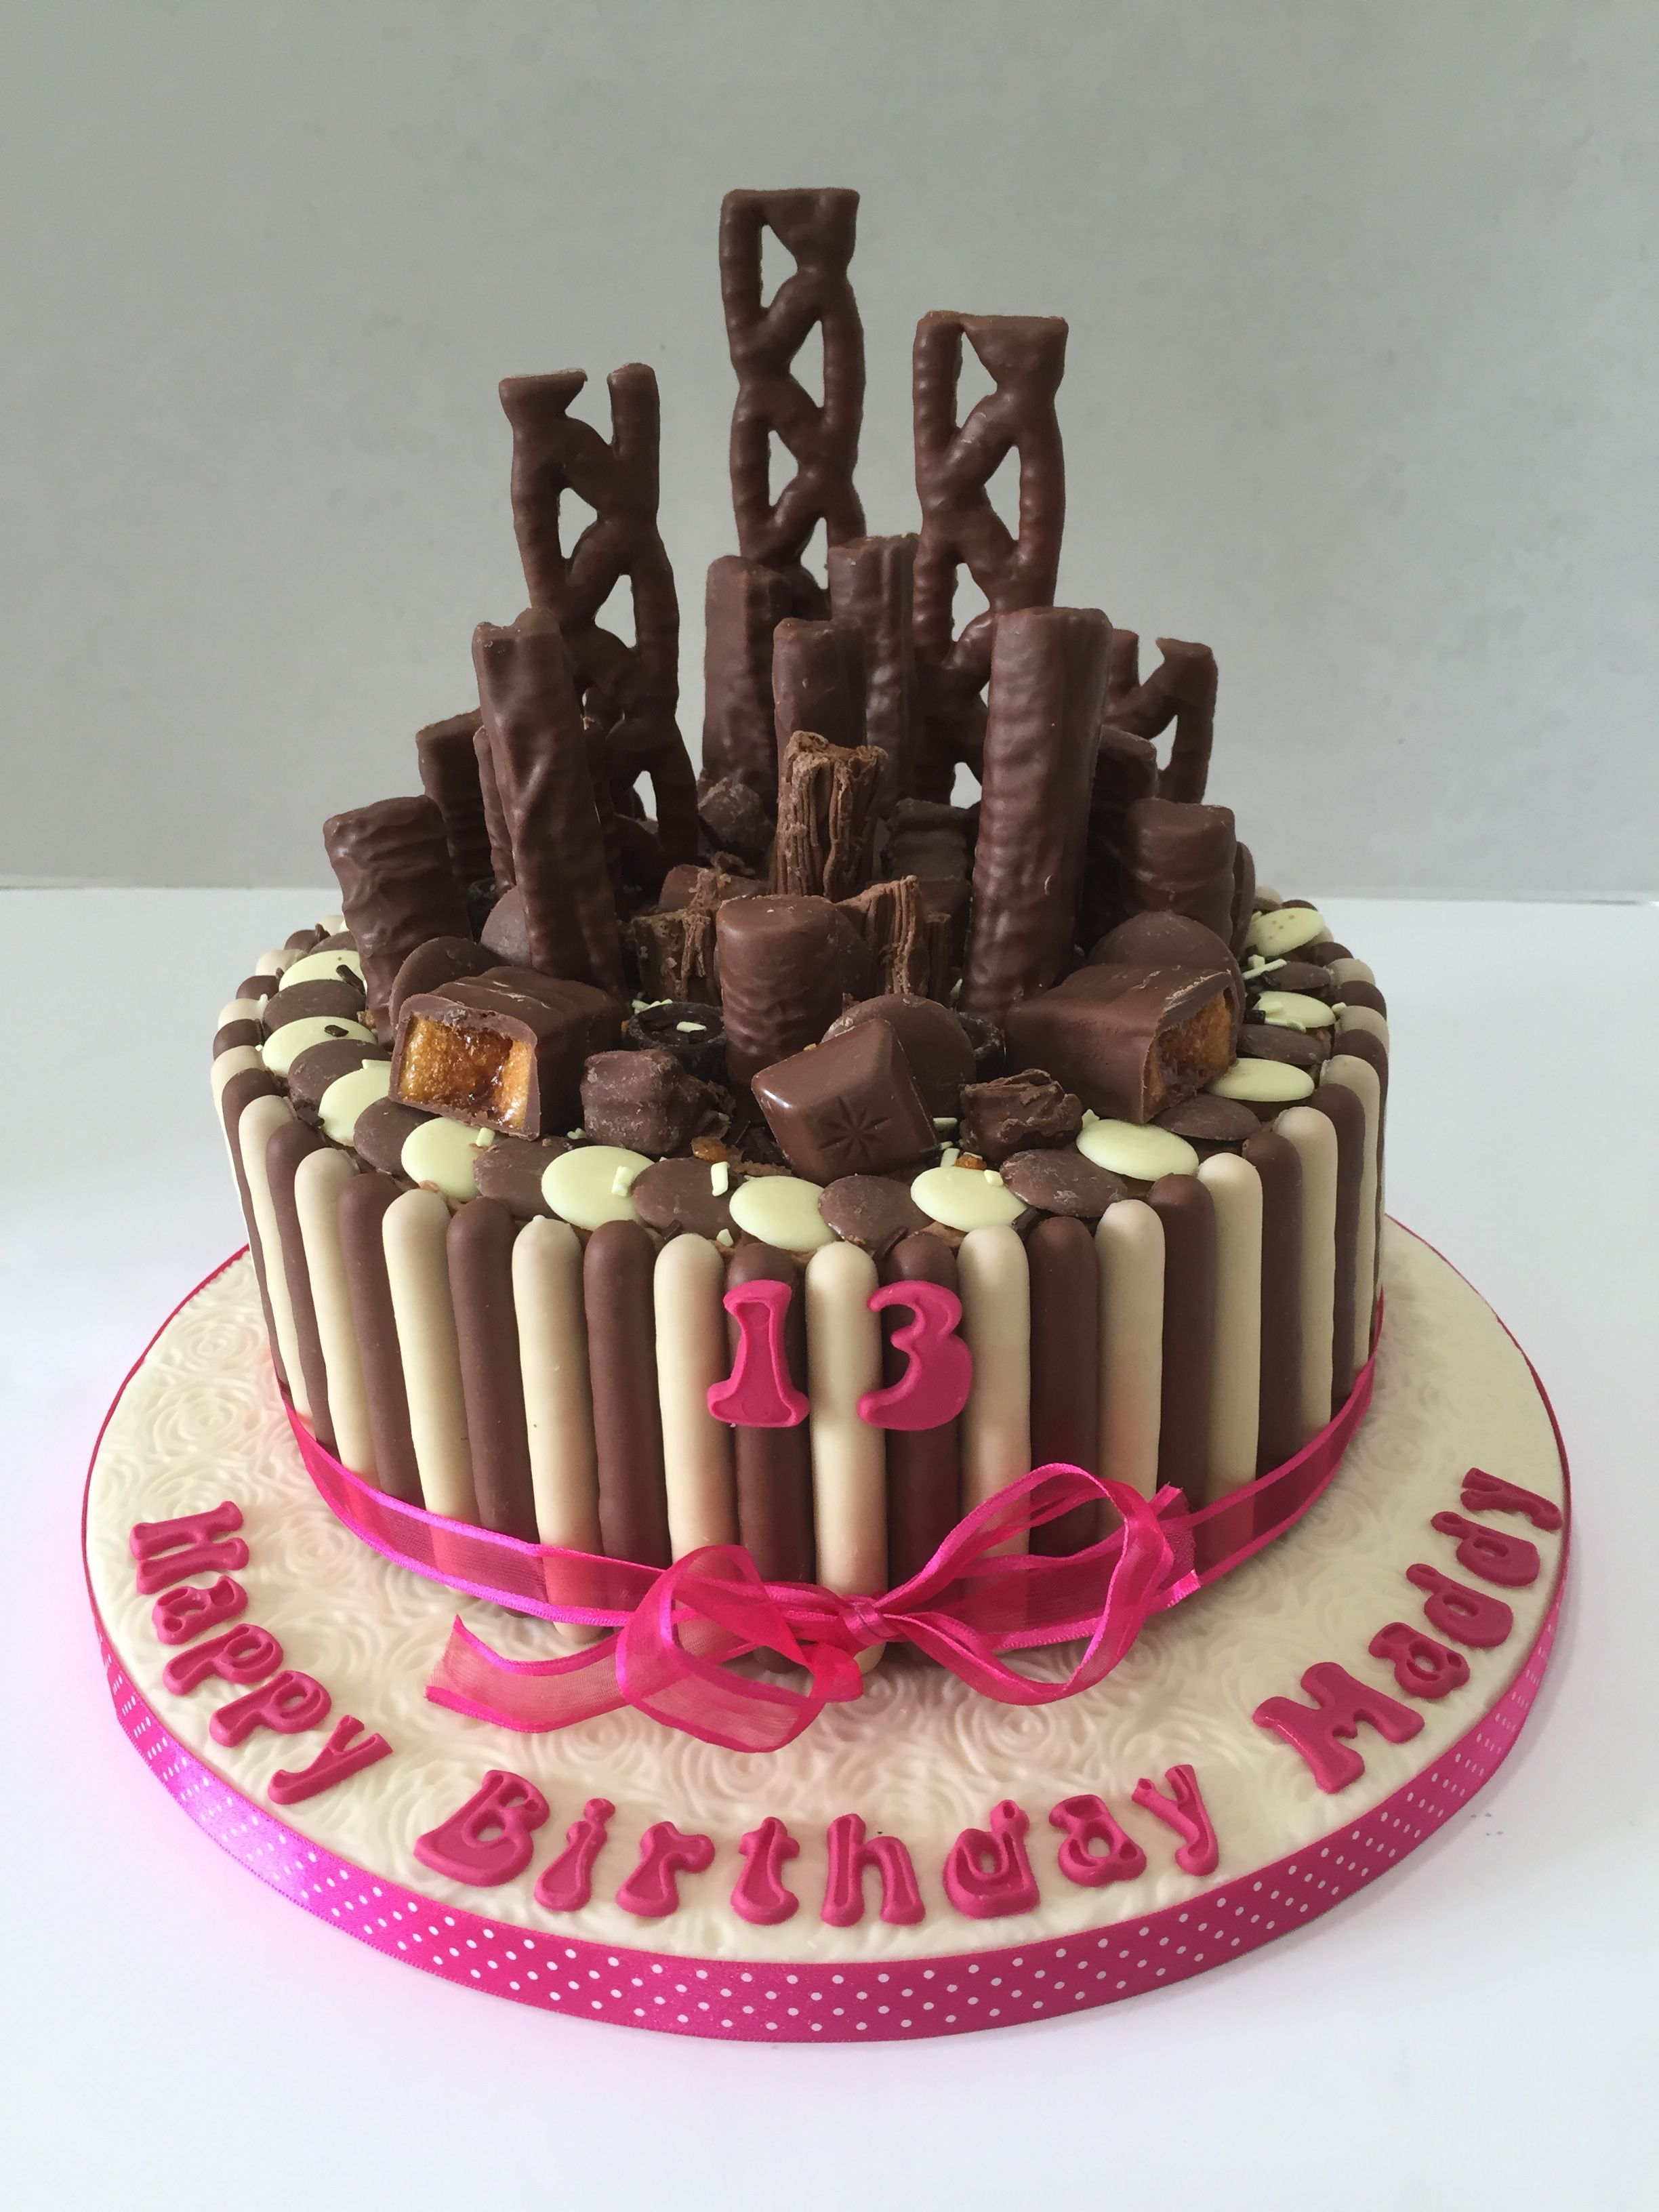 Chocolate Explosion Full Of Cadburys Cake June 2016 With Images